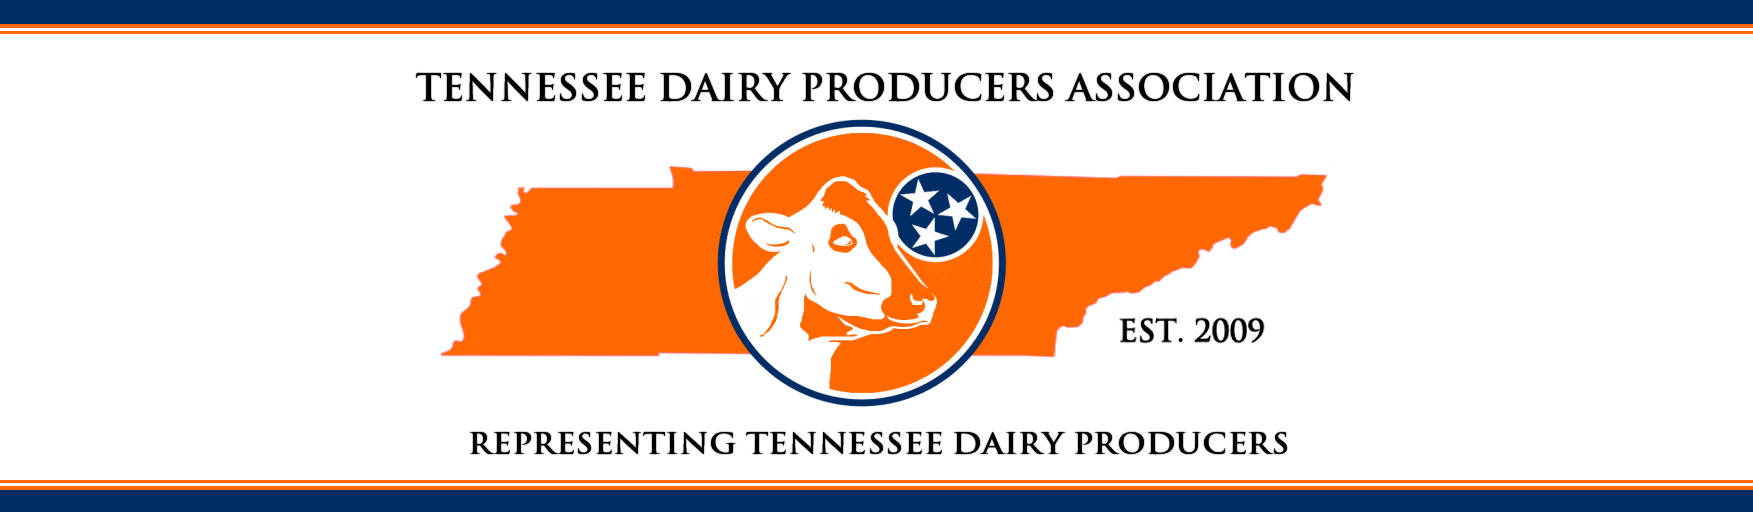 Tennessee Dairy Producers Association